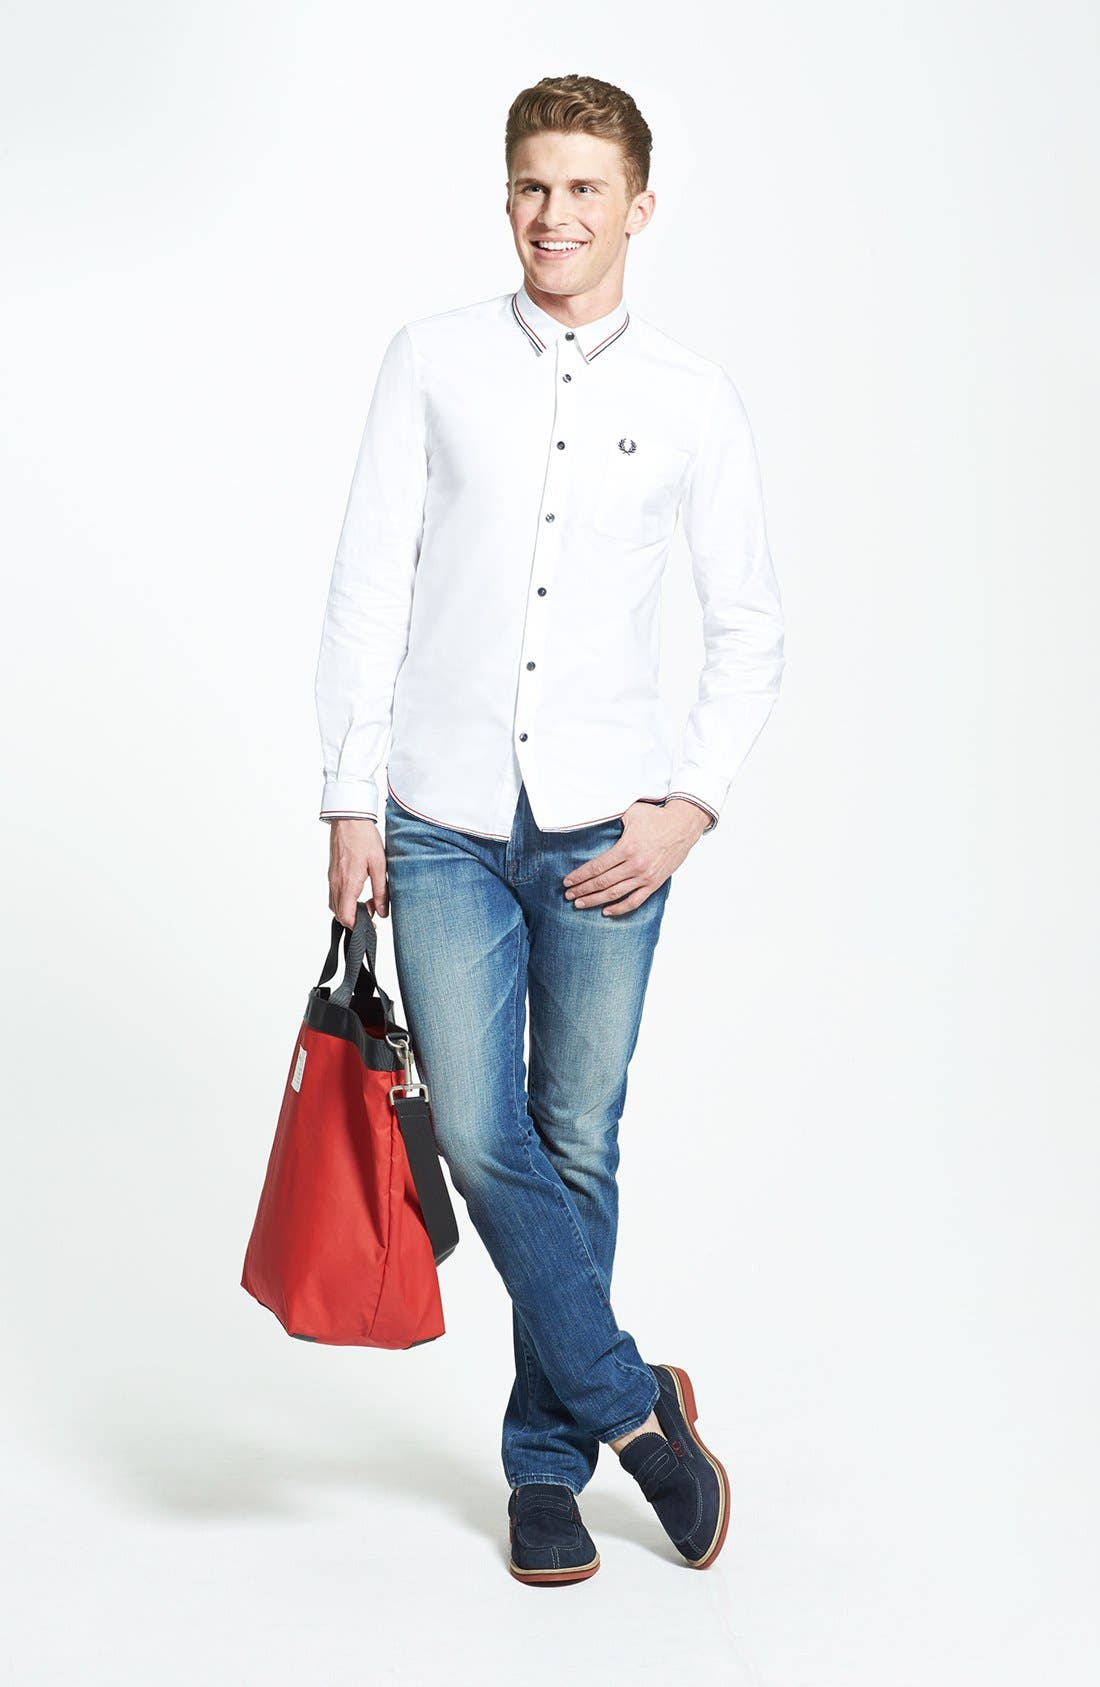 Alternate Image 1 Selected - Fred Perry Tipped Oxford Sport Shirt & Hudson Jeans Straight Leg Jeans